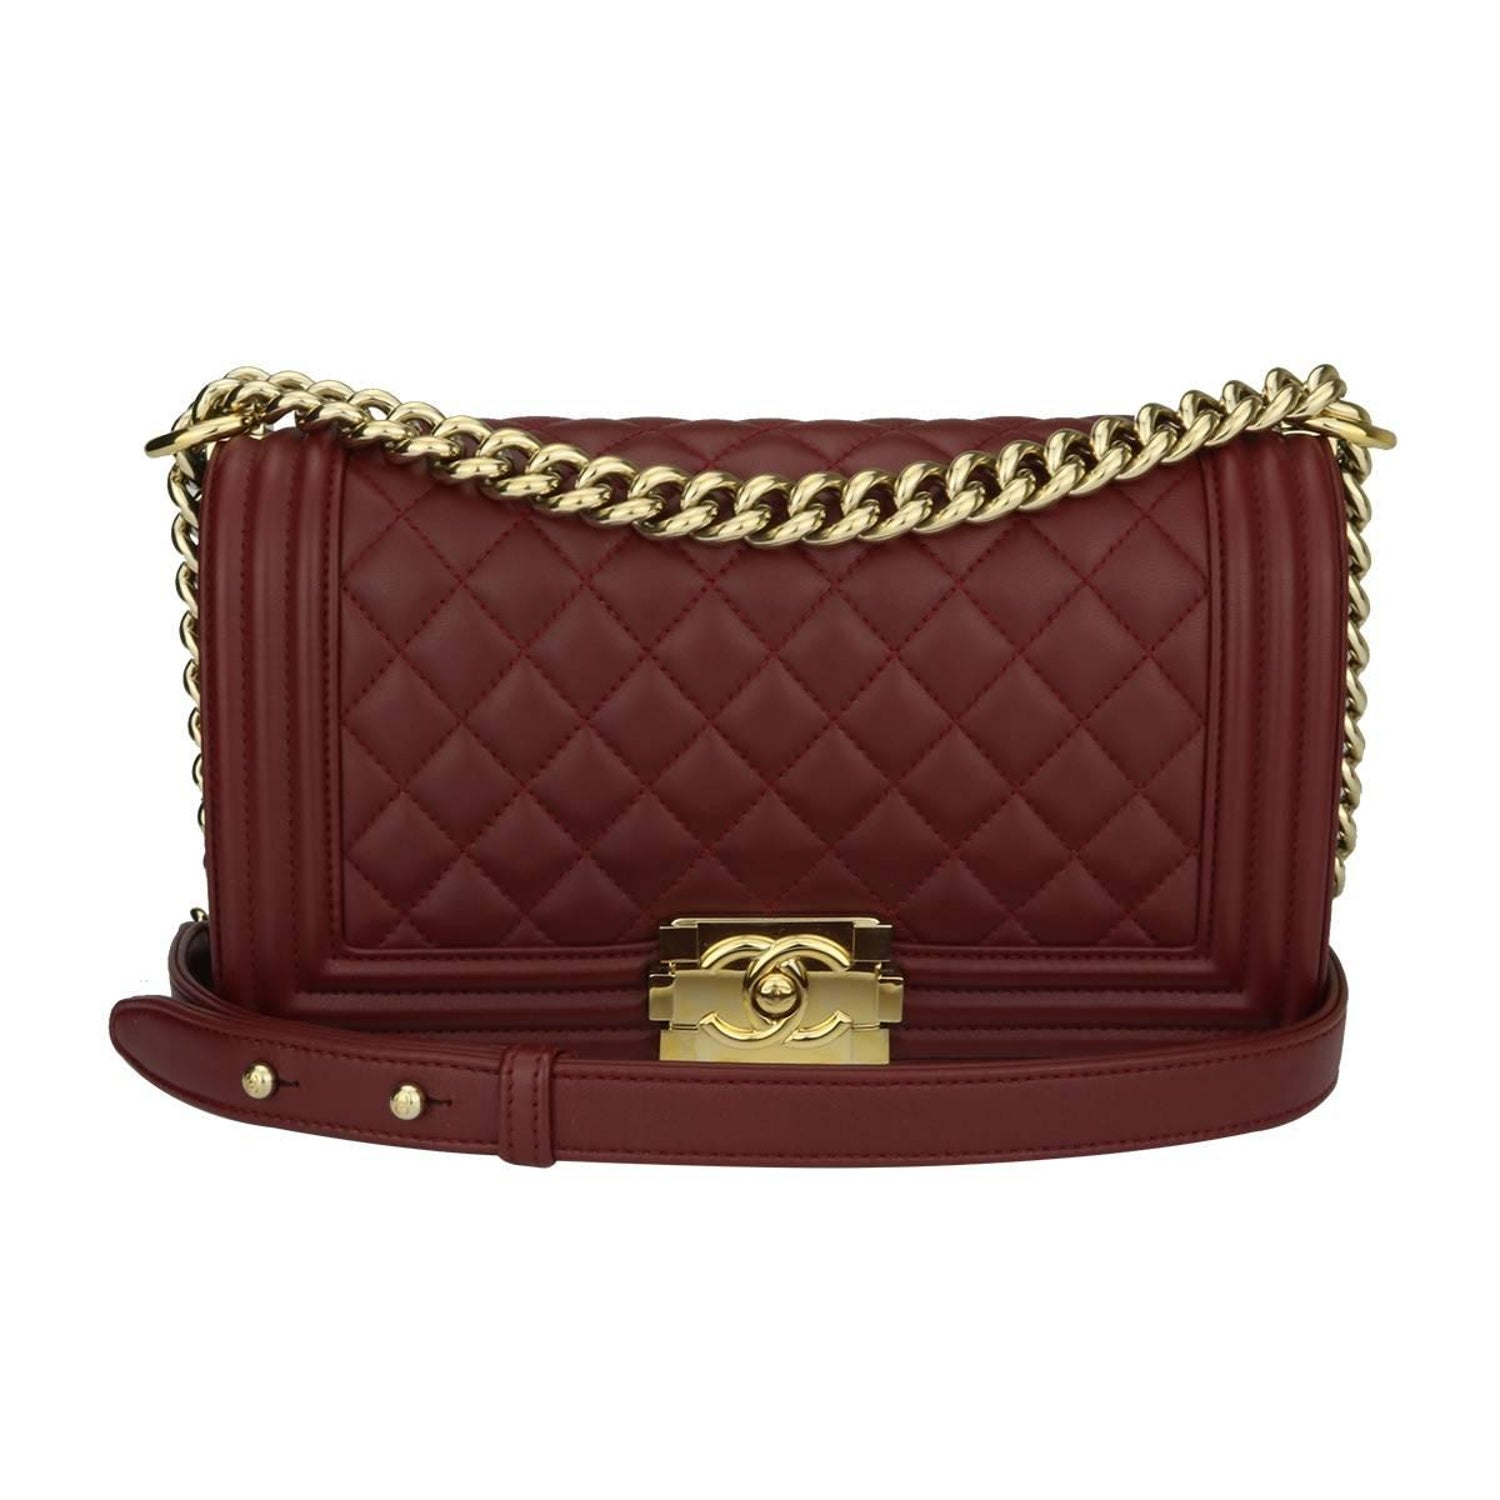 d8edb7361bae66 CHANEL Old Medium Quilted Boy Burgundy Lambskin with Shiny Gold Hardware  2015 For Sale at 1stdibs